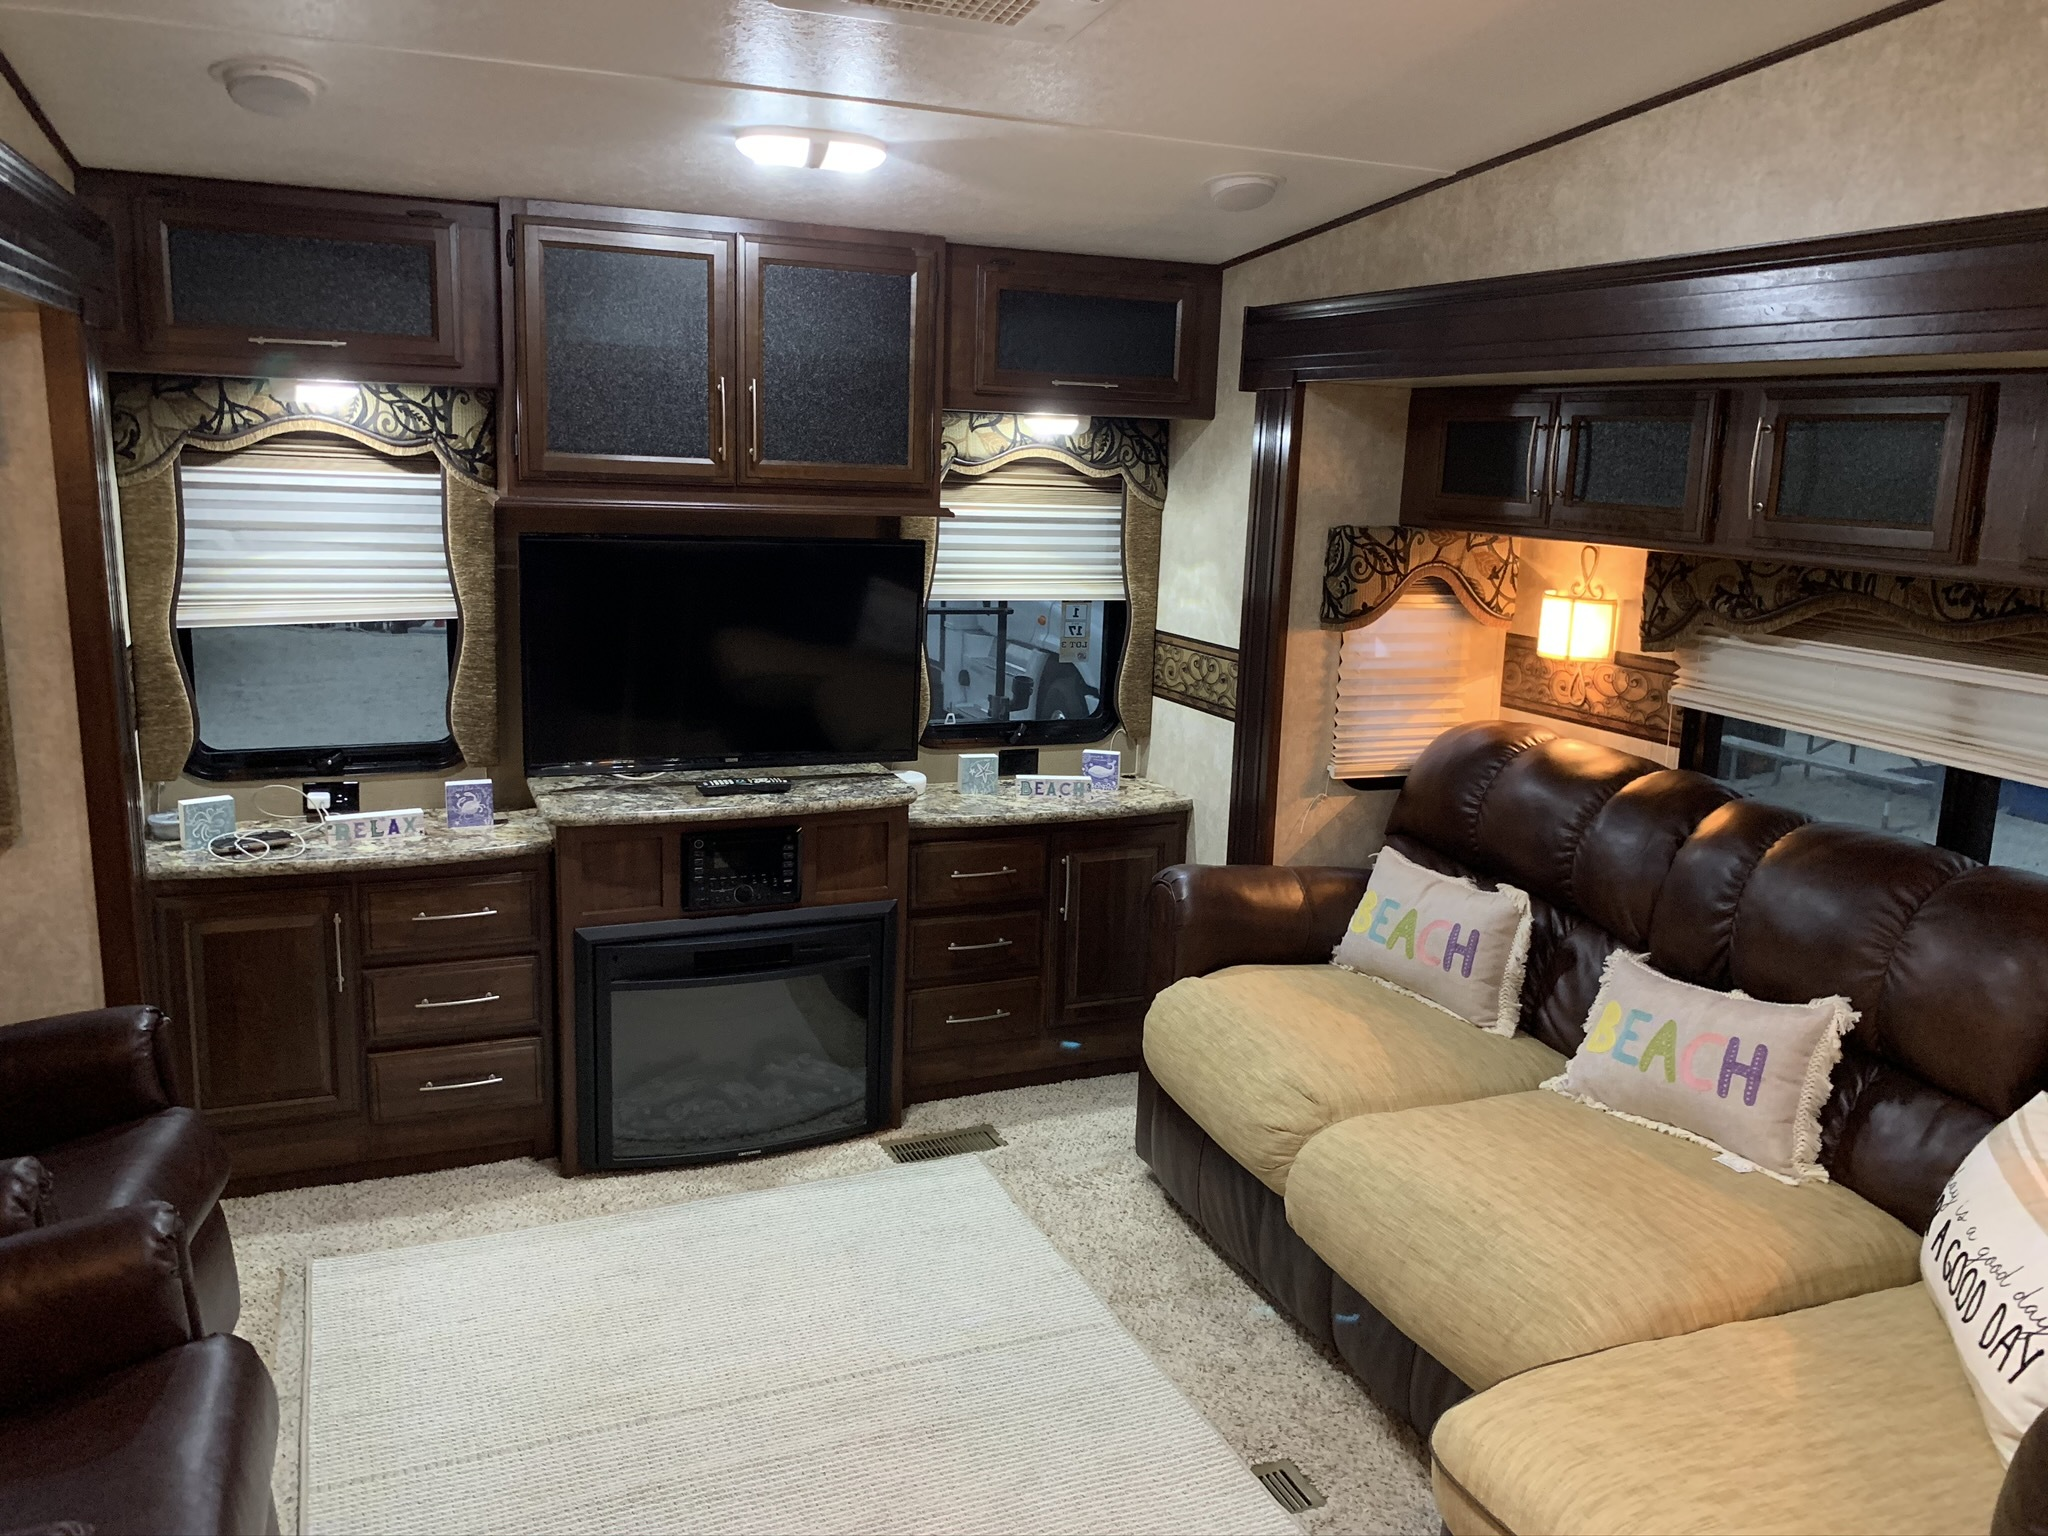 Photo 2014 Keystone COUGAR 327RES $ 22500     Get Financing as low as 243.00mo      Get Financing as low as 243.00mo